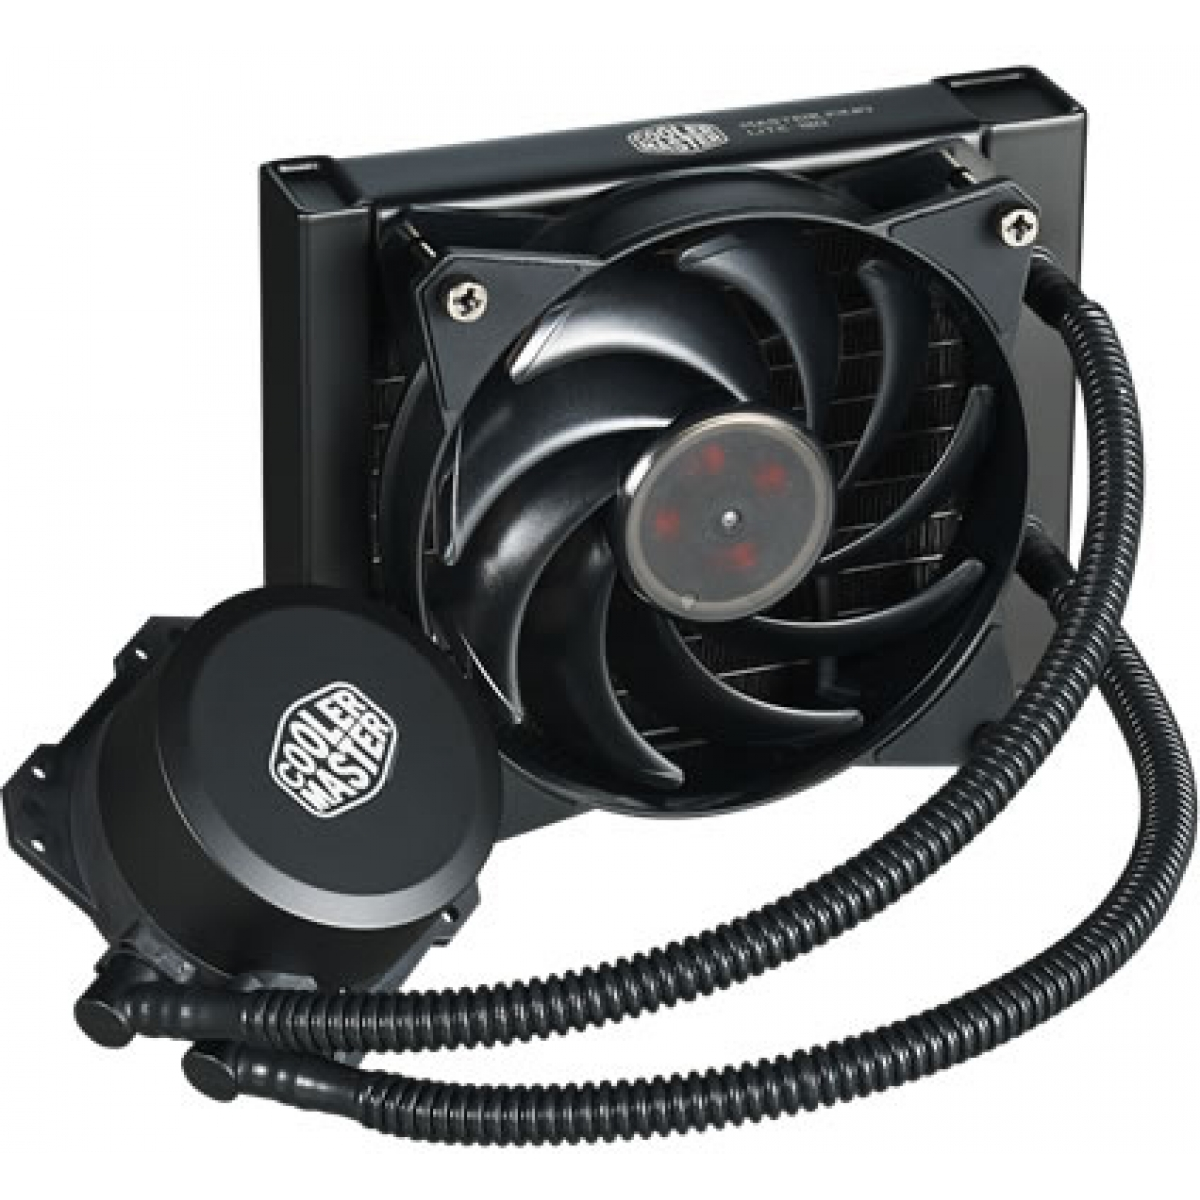 Water Cooler Cooler Master MasterLiquid Lite 120mm, Intel-AMD, MLW-D12M-A20PW-R1